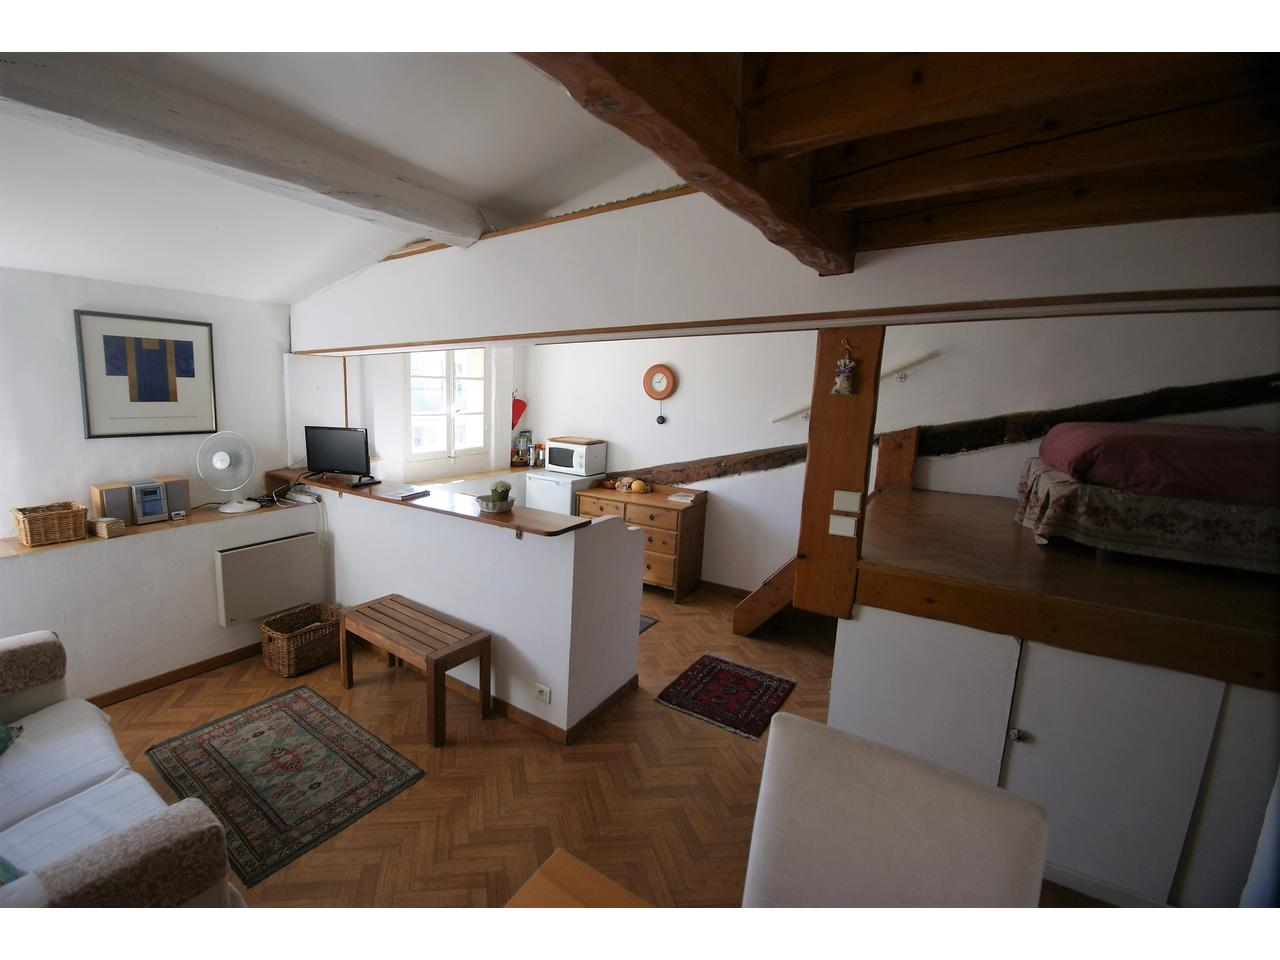 Immobilier appartement nice appartement 1 pieces 26 m a vendre for Immobilier atypique nice